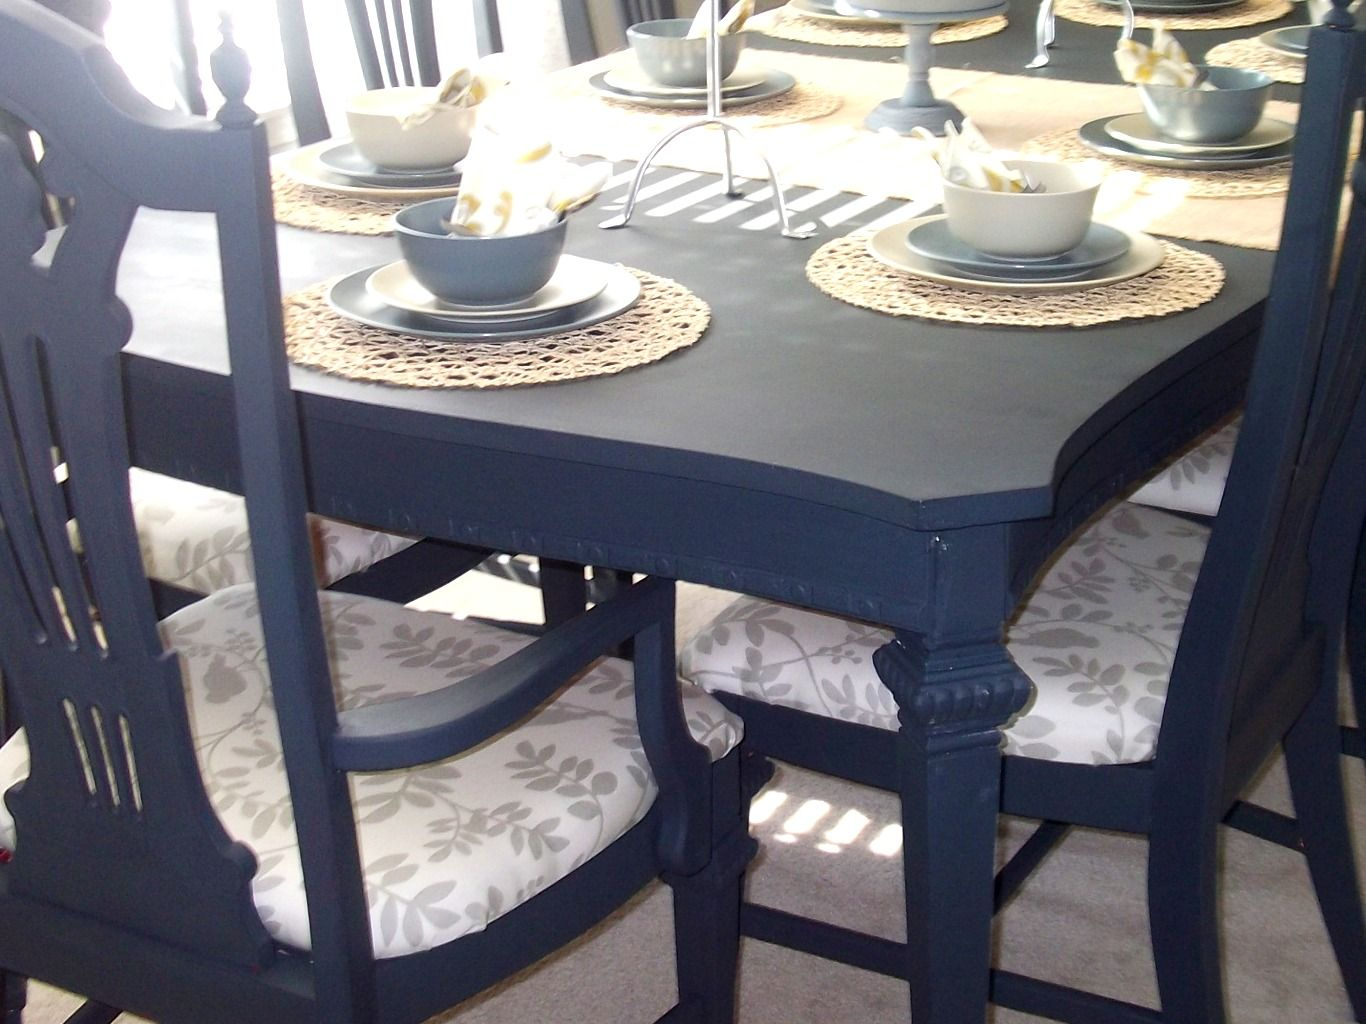 painted dining room furniture ideas. Paint Dining Table | Last But Not Least, Let\u0027s Break Down The Cost Of This Painted Room Furniture Ideas O